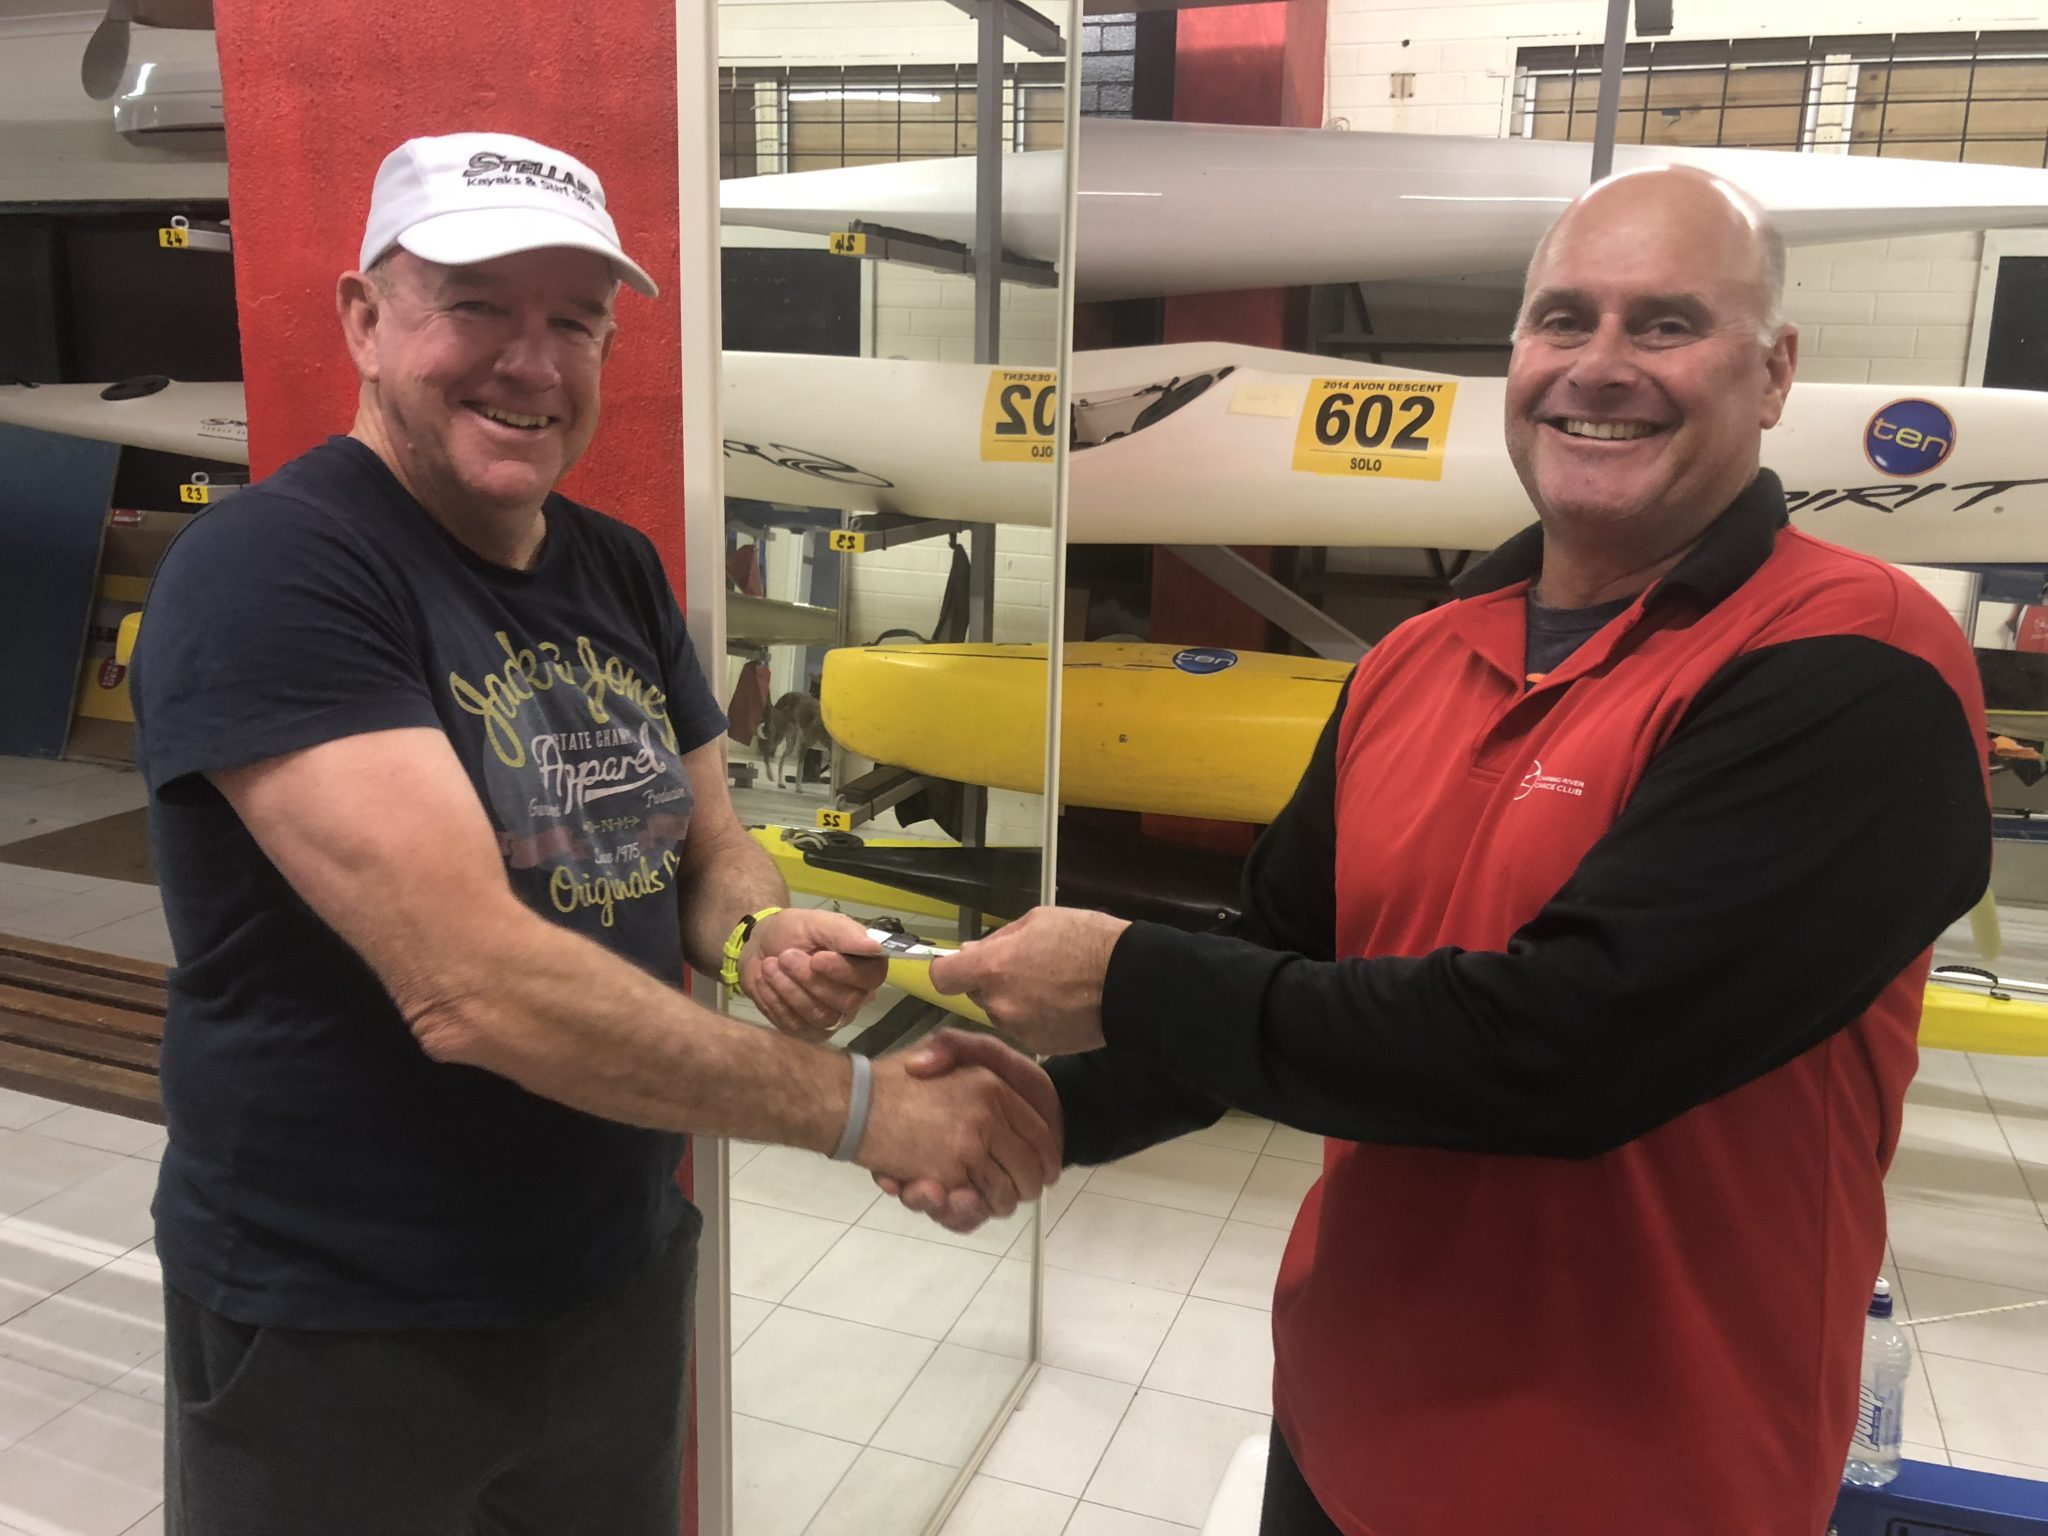 Tues 23rd October 2018 : Tonight's photo shows club member Peter Burge presenting Steve Mitchinson with a movie voucher